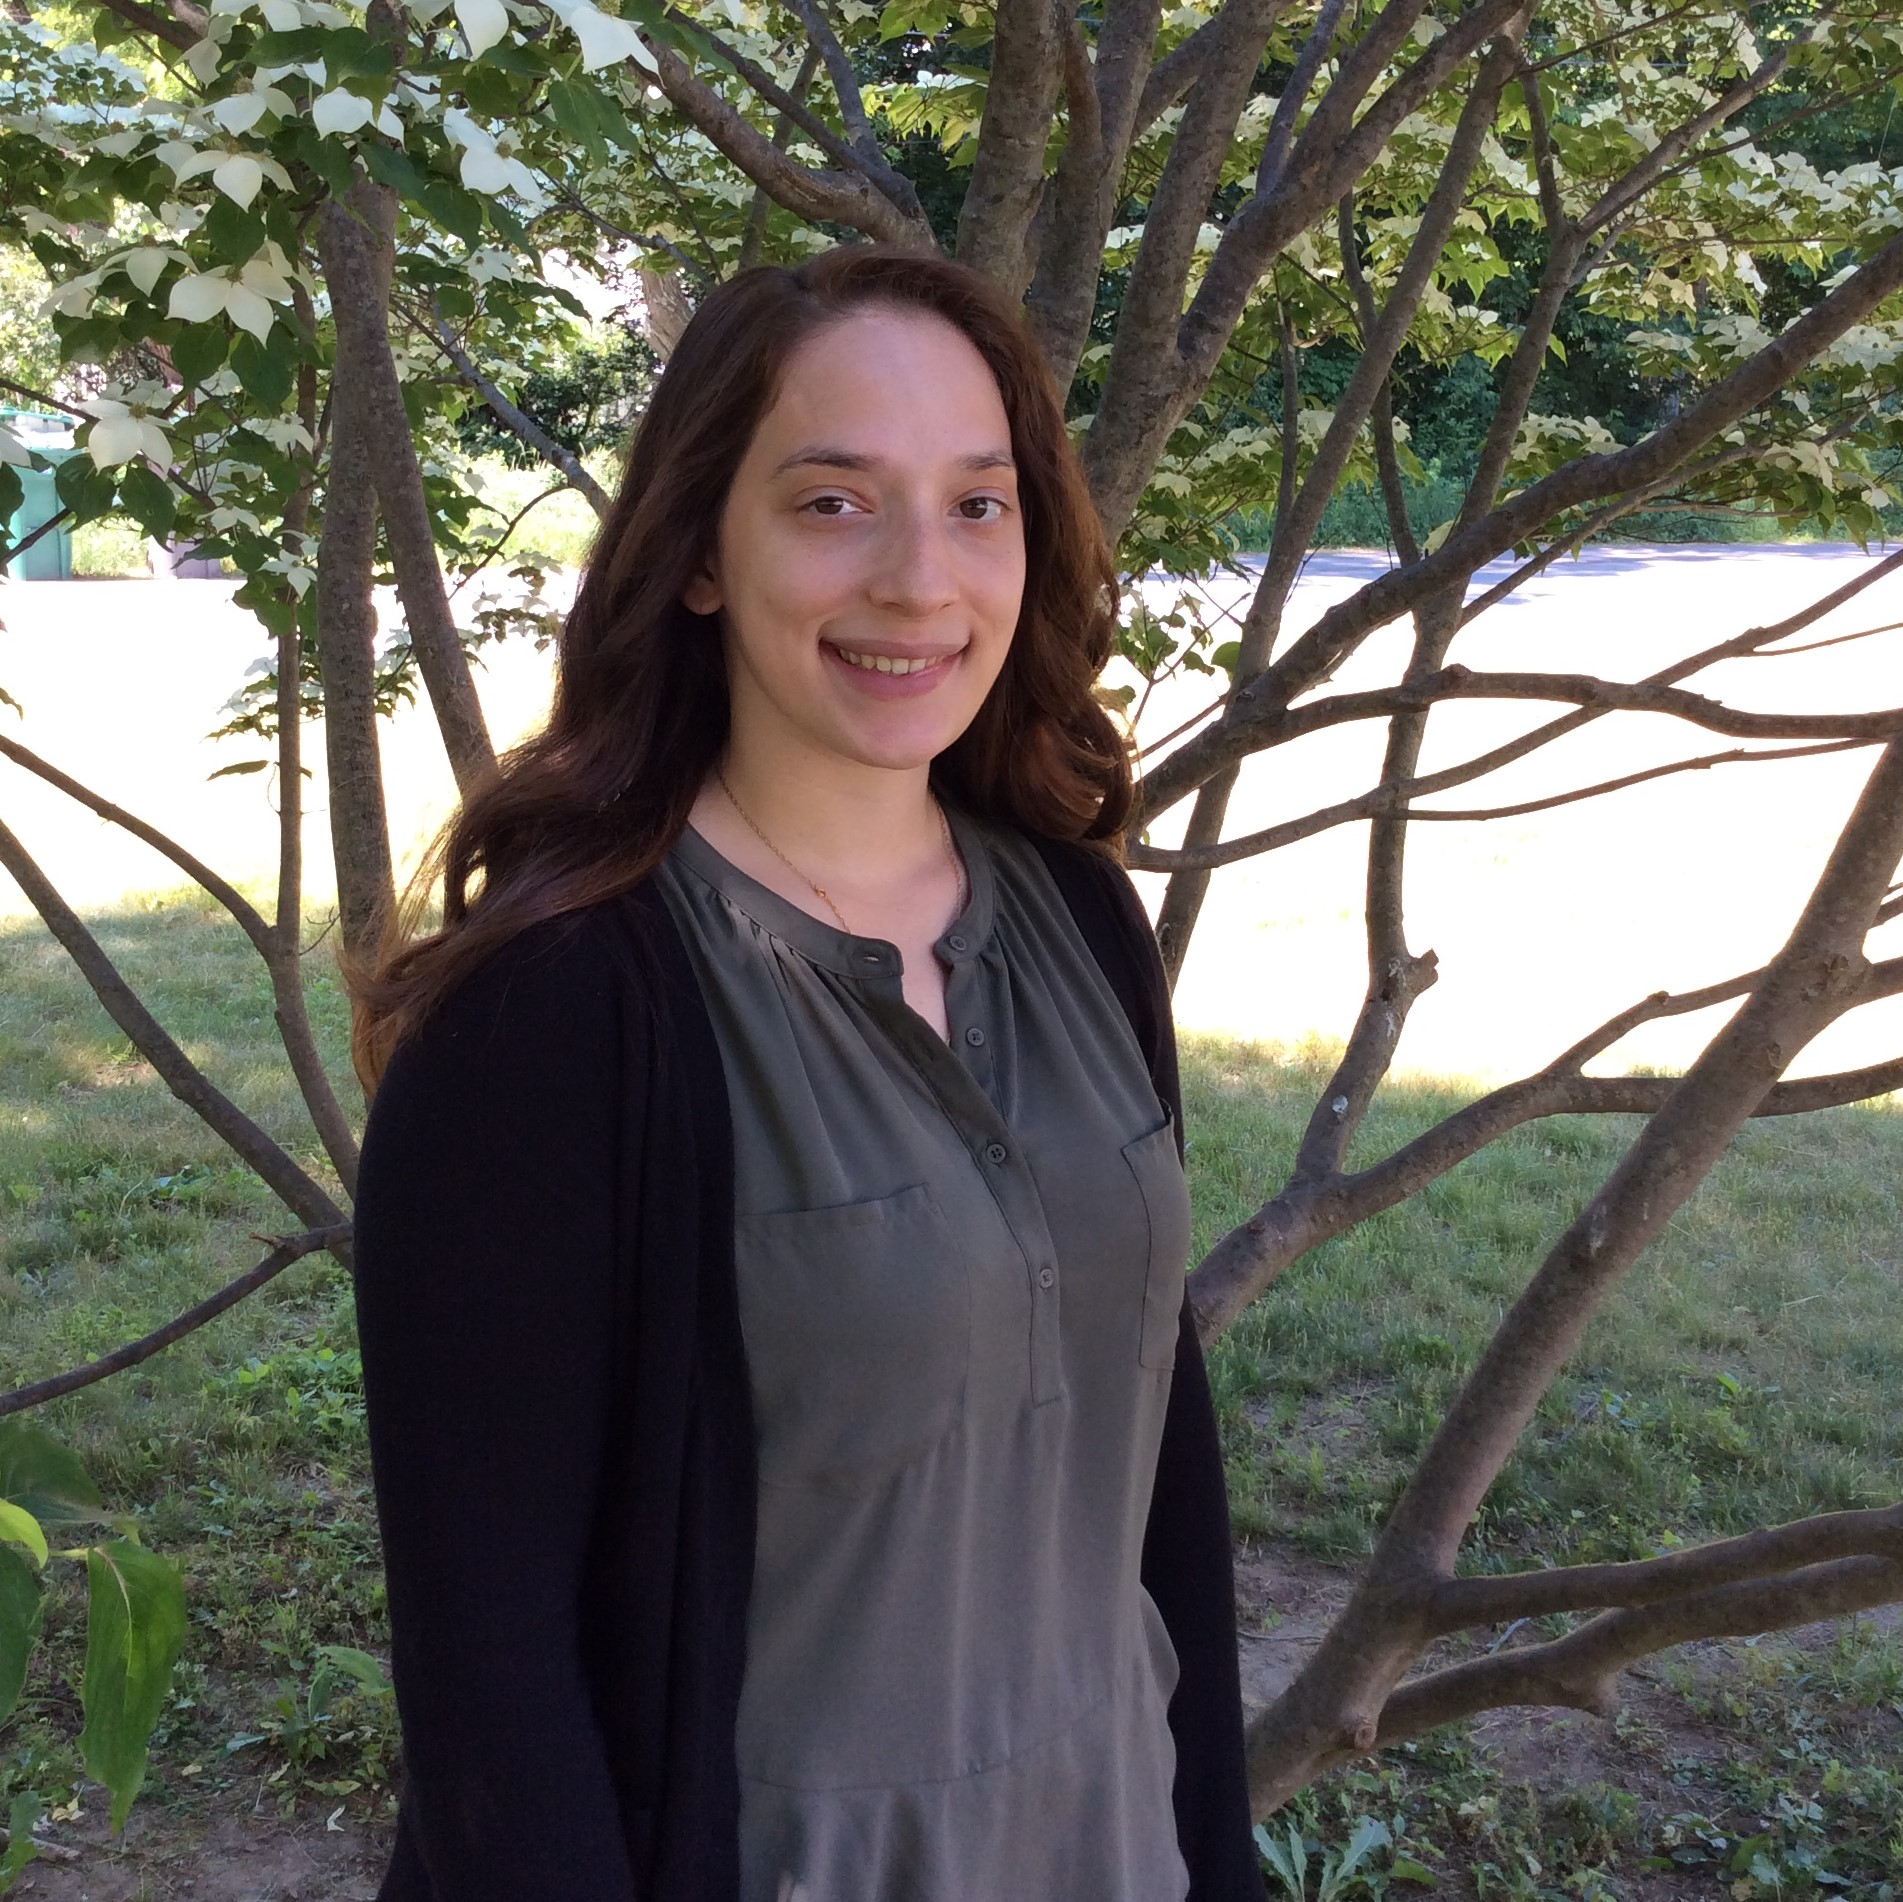 - Brooke Beghin - Assistant DirectorBrooke has been in the field of Early Childhood Education since 2008. She received her Bachelor's in Psychology from St. John's University and is a Certified Infant Massage Teacher. In her spare time, Brooke enjoys traveling, reading, painting, and cooking.